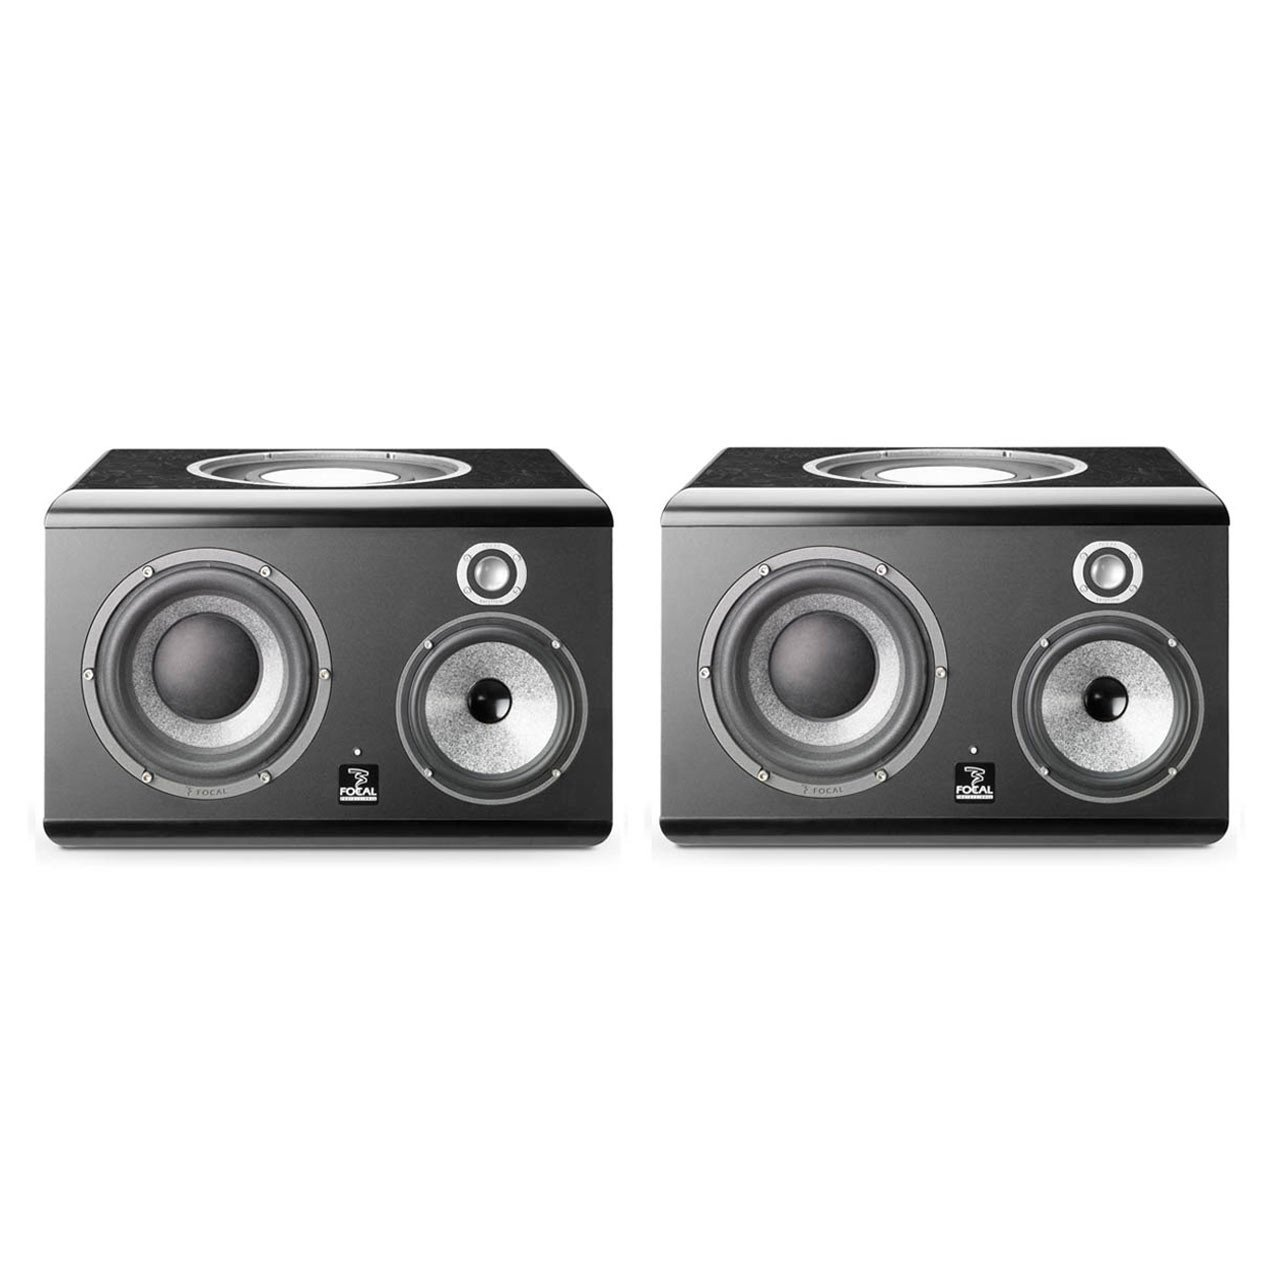 Active Studio Monitors - Focal SM9 Professional Studio Monitor Speakers PAIR